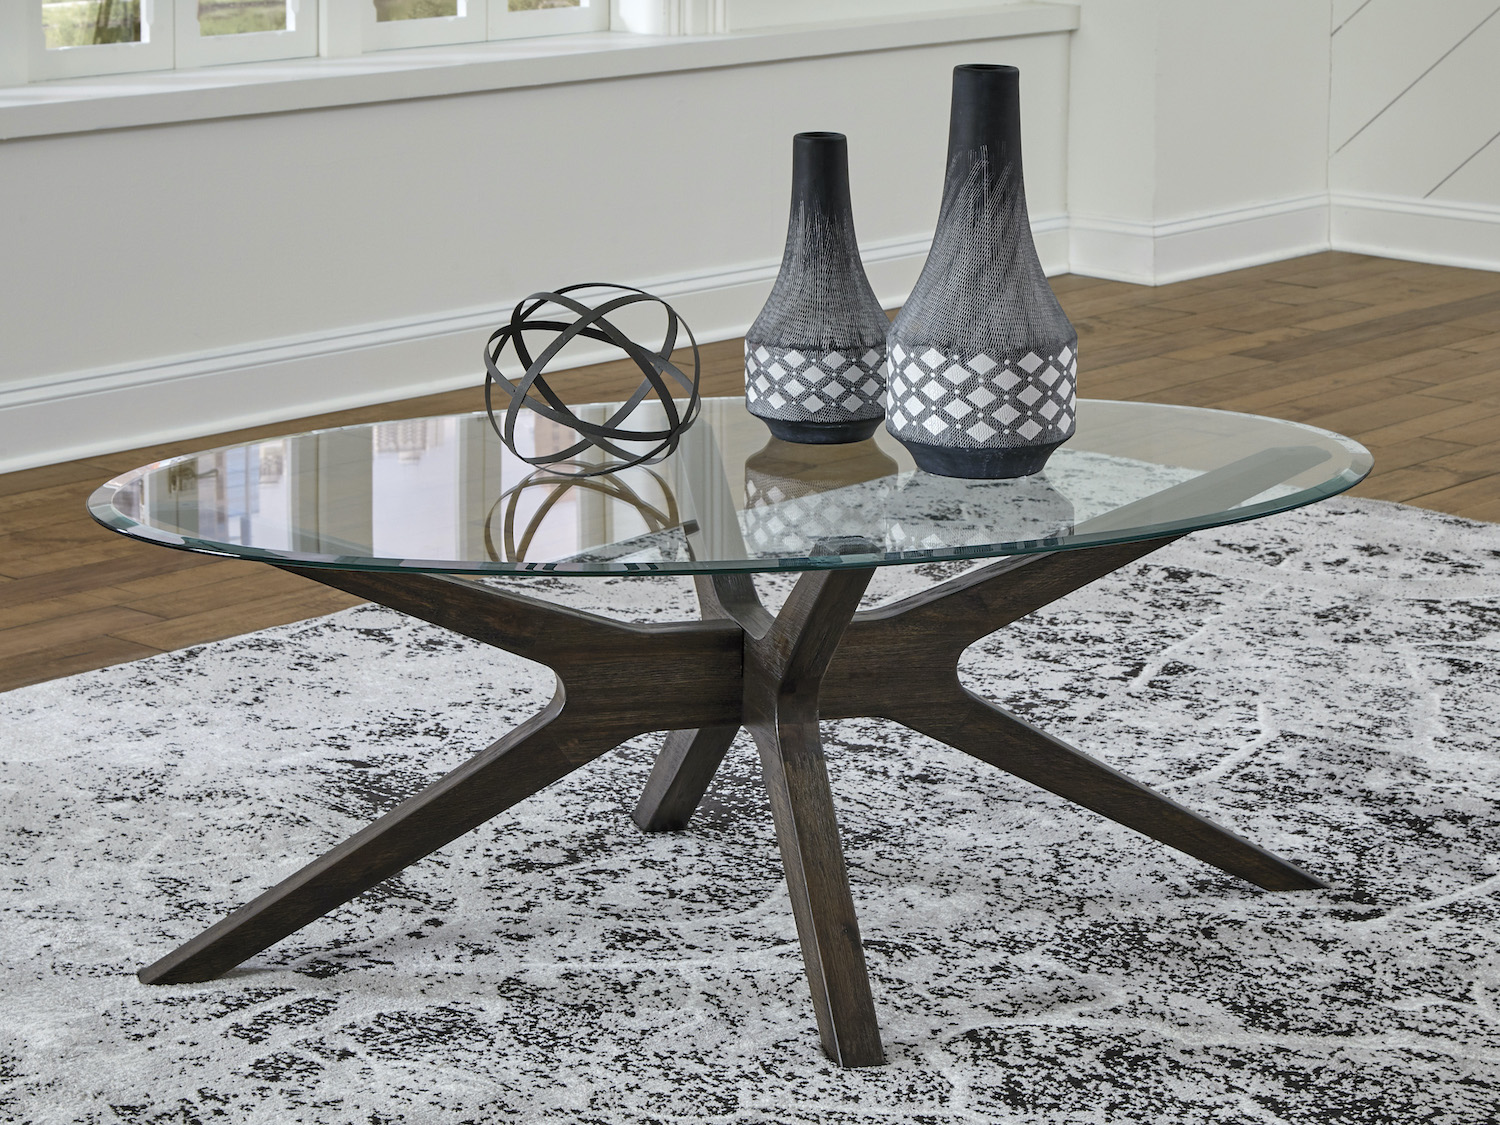 Zannory Coffee Table, T348-6, Coffee Tables by Midha Furniture to Brampton, Mississauga, Etobicoke, Toronto, Scraborough, Caledon, Oakville, Markham, Ajax, Pickering, Oshawa, Richmondhill, Kitchener, Hamilton, Cambridge, Waterloo and GTA area